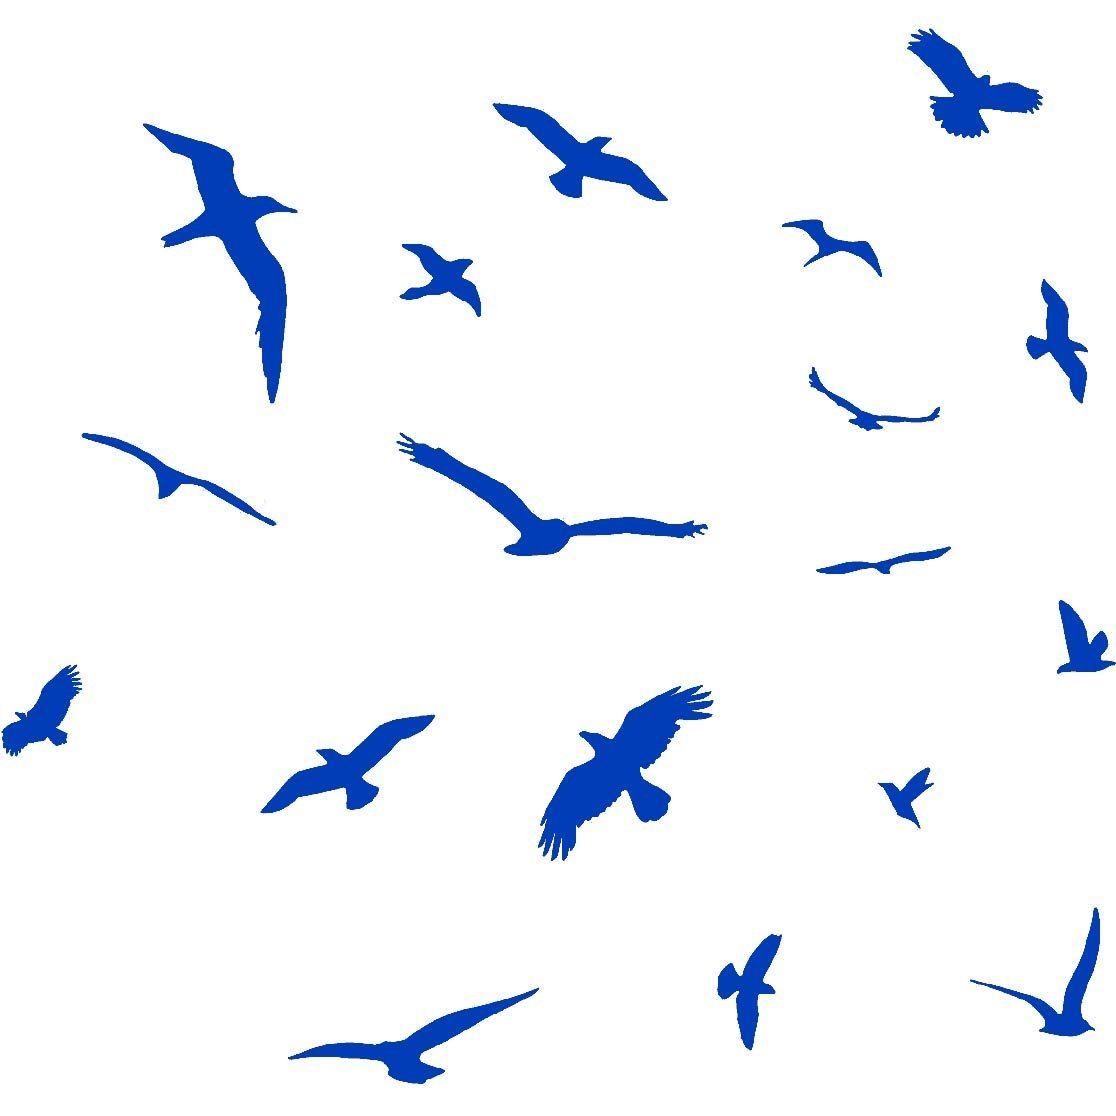 VWAQ Flock of Birds Flying Wall Decals Stickers Peel and Stick Wall Art (BROWN)